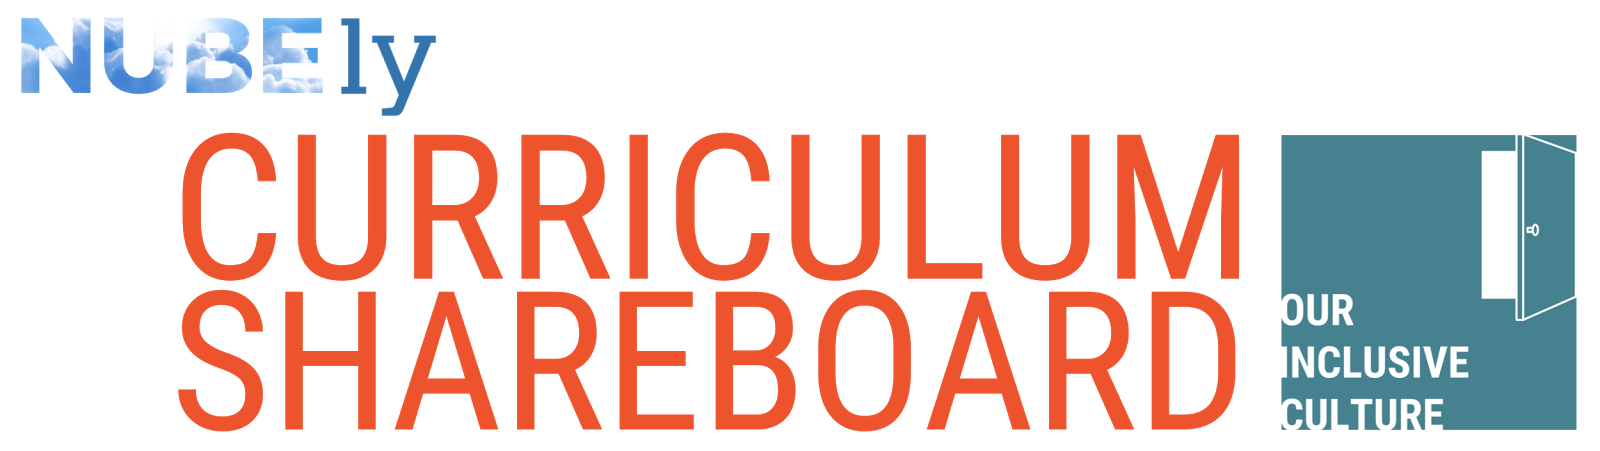 NUBEly Curriculum: Our Inclusive Culture Learner Shareboard